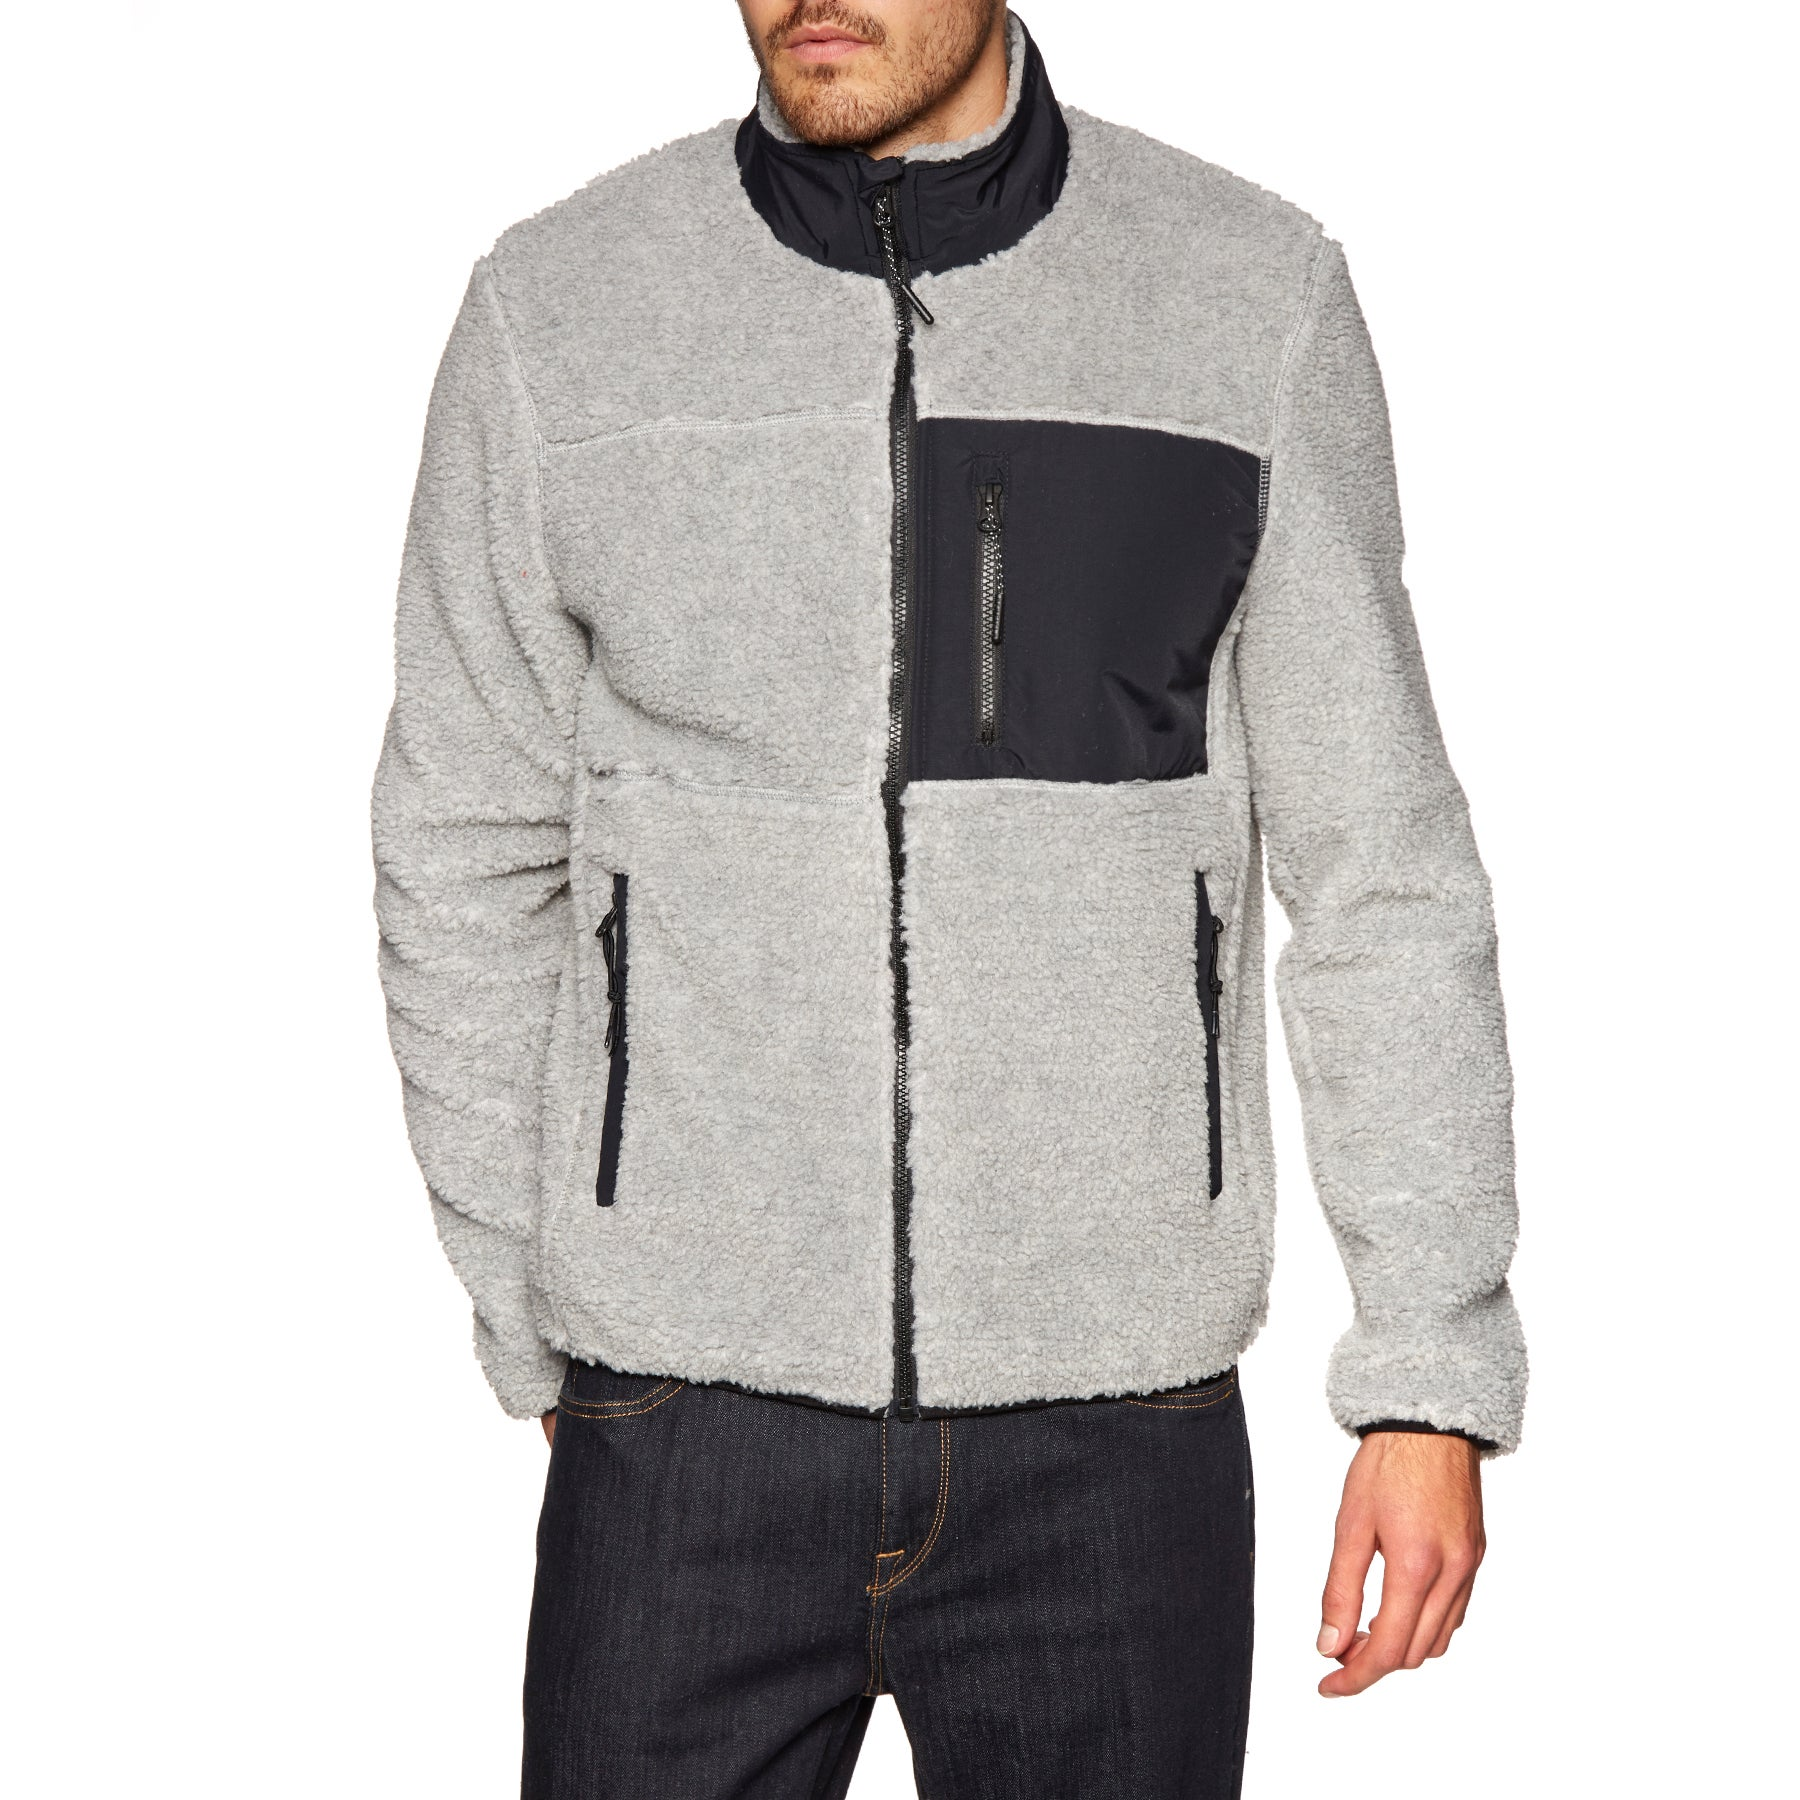 Penfield Mattawa Fleece - Grey